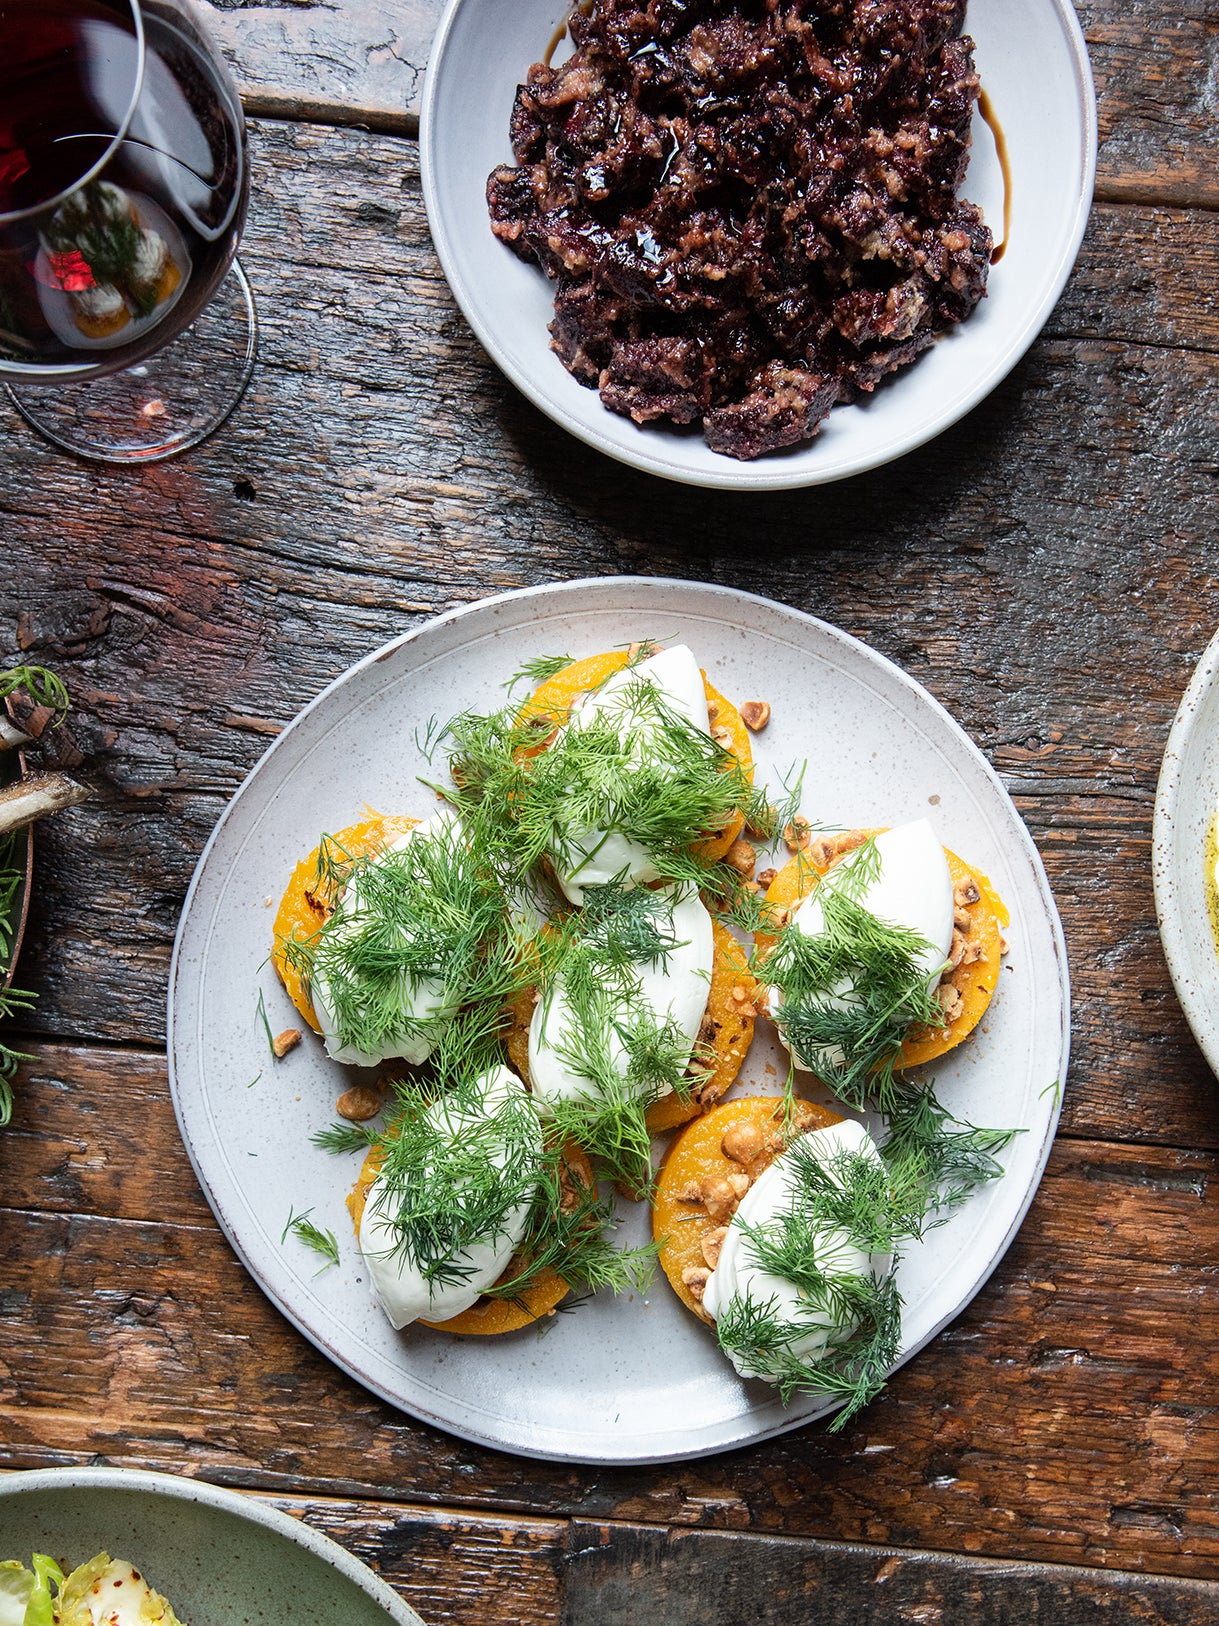 3 No-Brainer Recipes for When a Crowd Comes Over